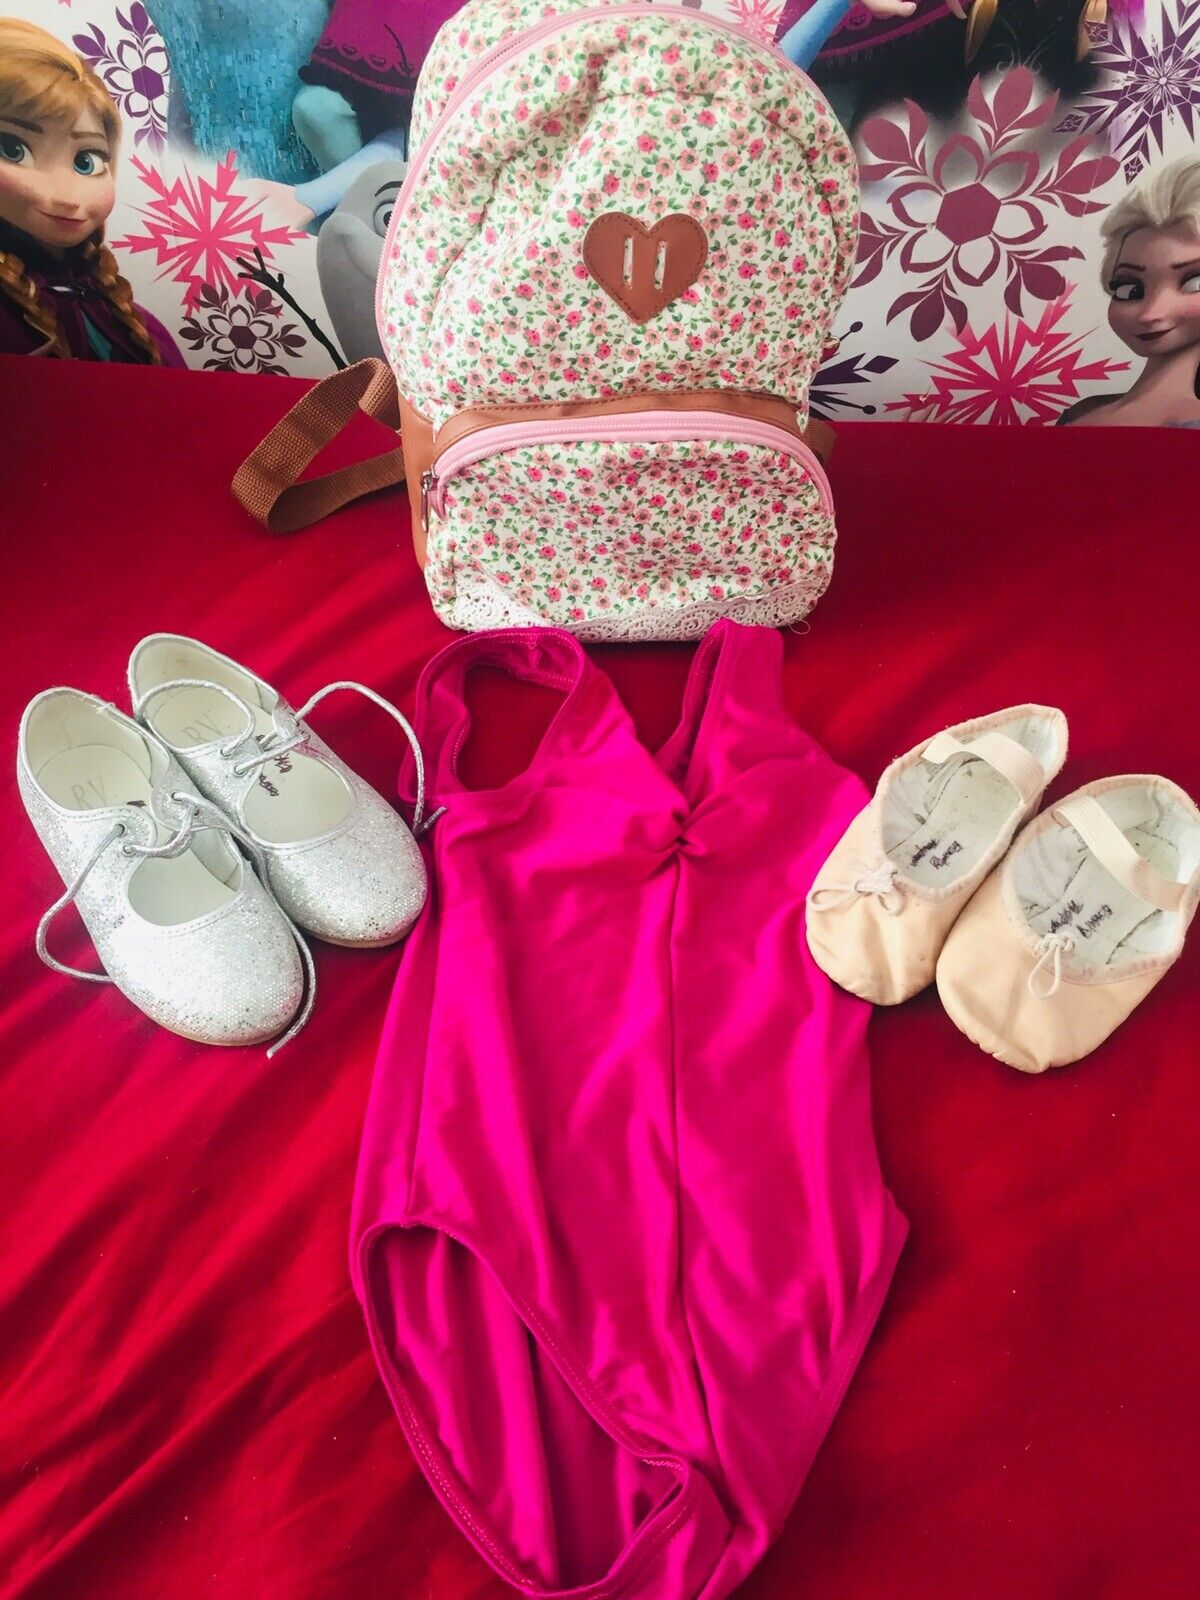 Preowned Children Tap Shoes Size 8, Other Various Items Used